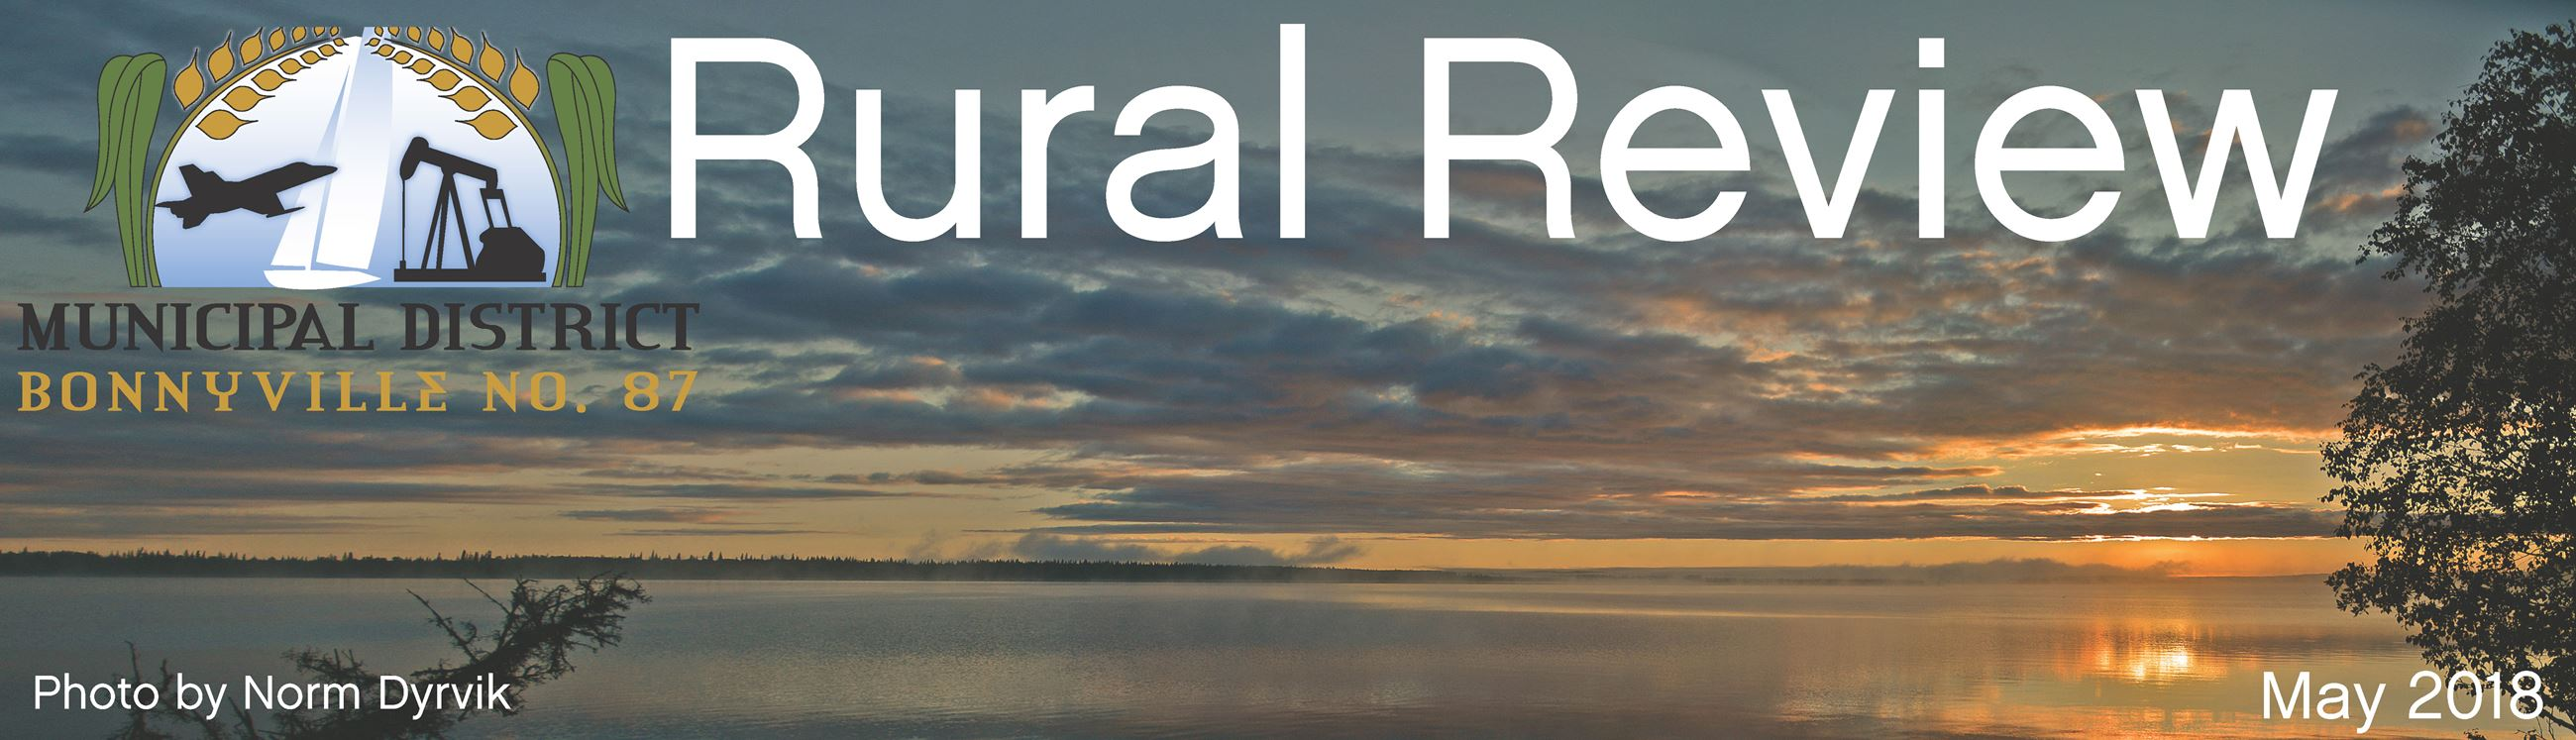 Rural Review May 2018